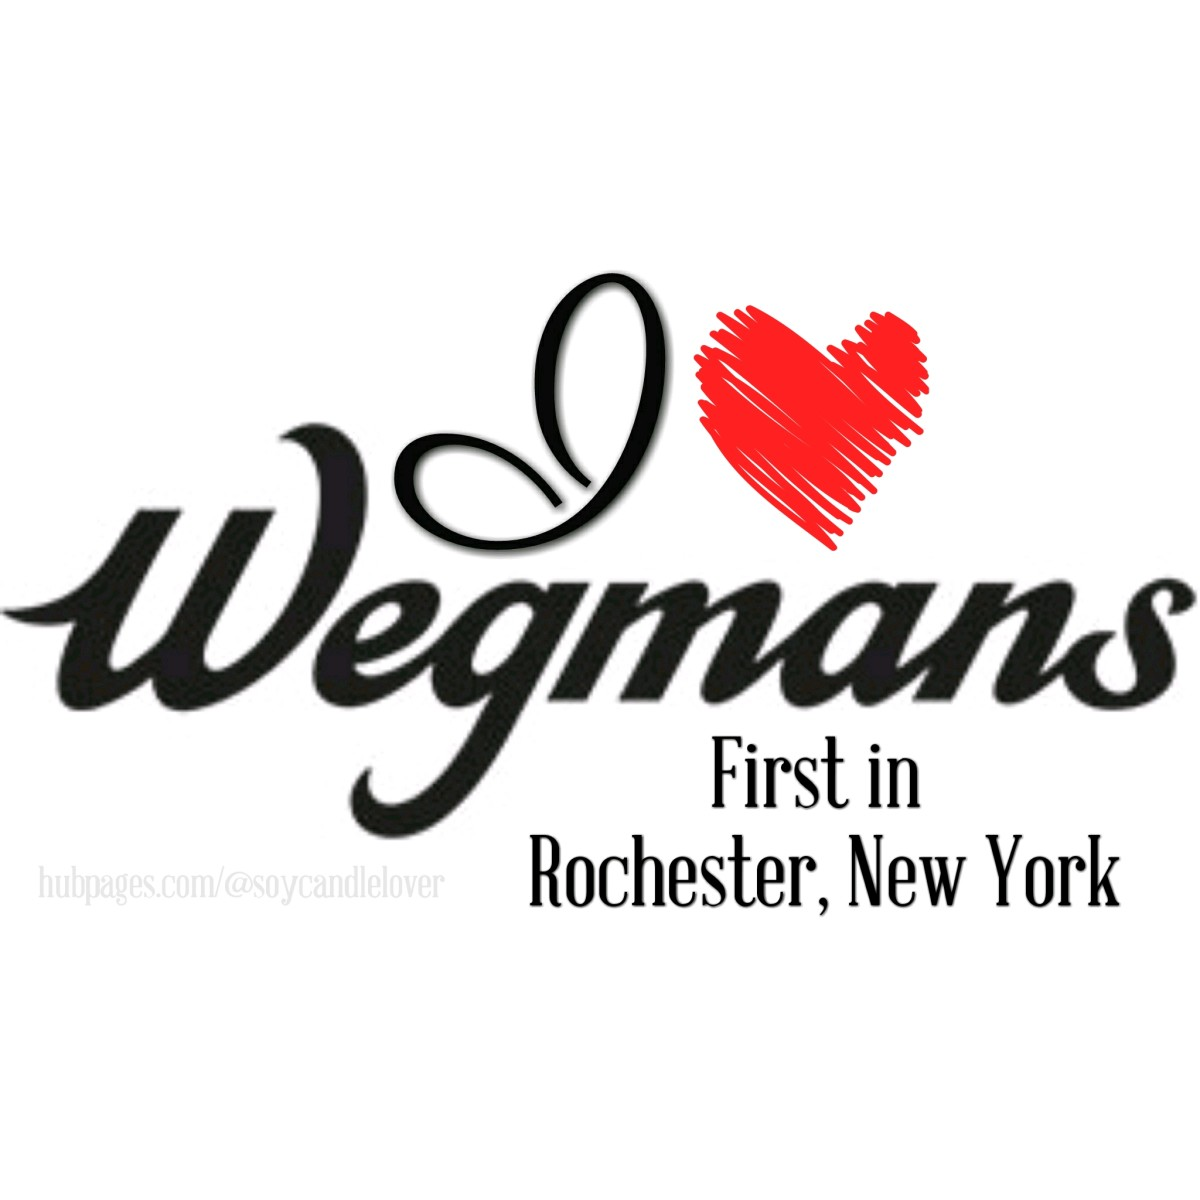 rochester-new-york-wegmans